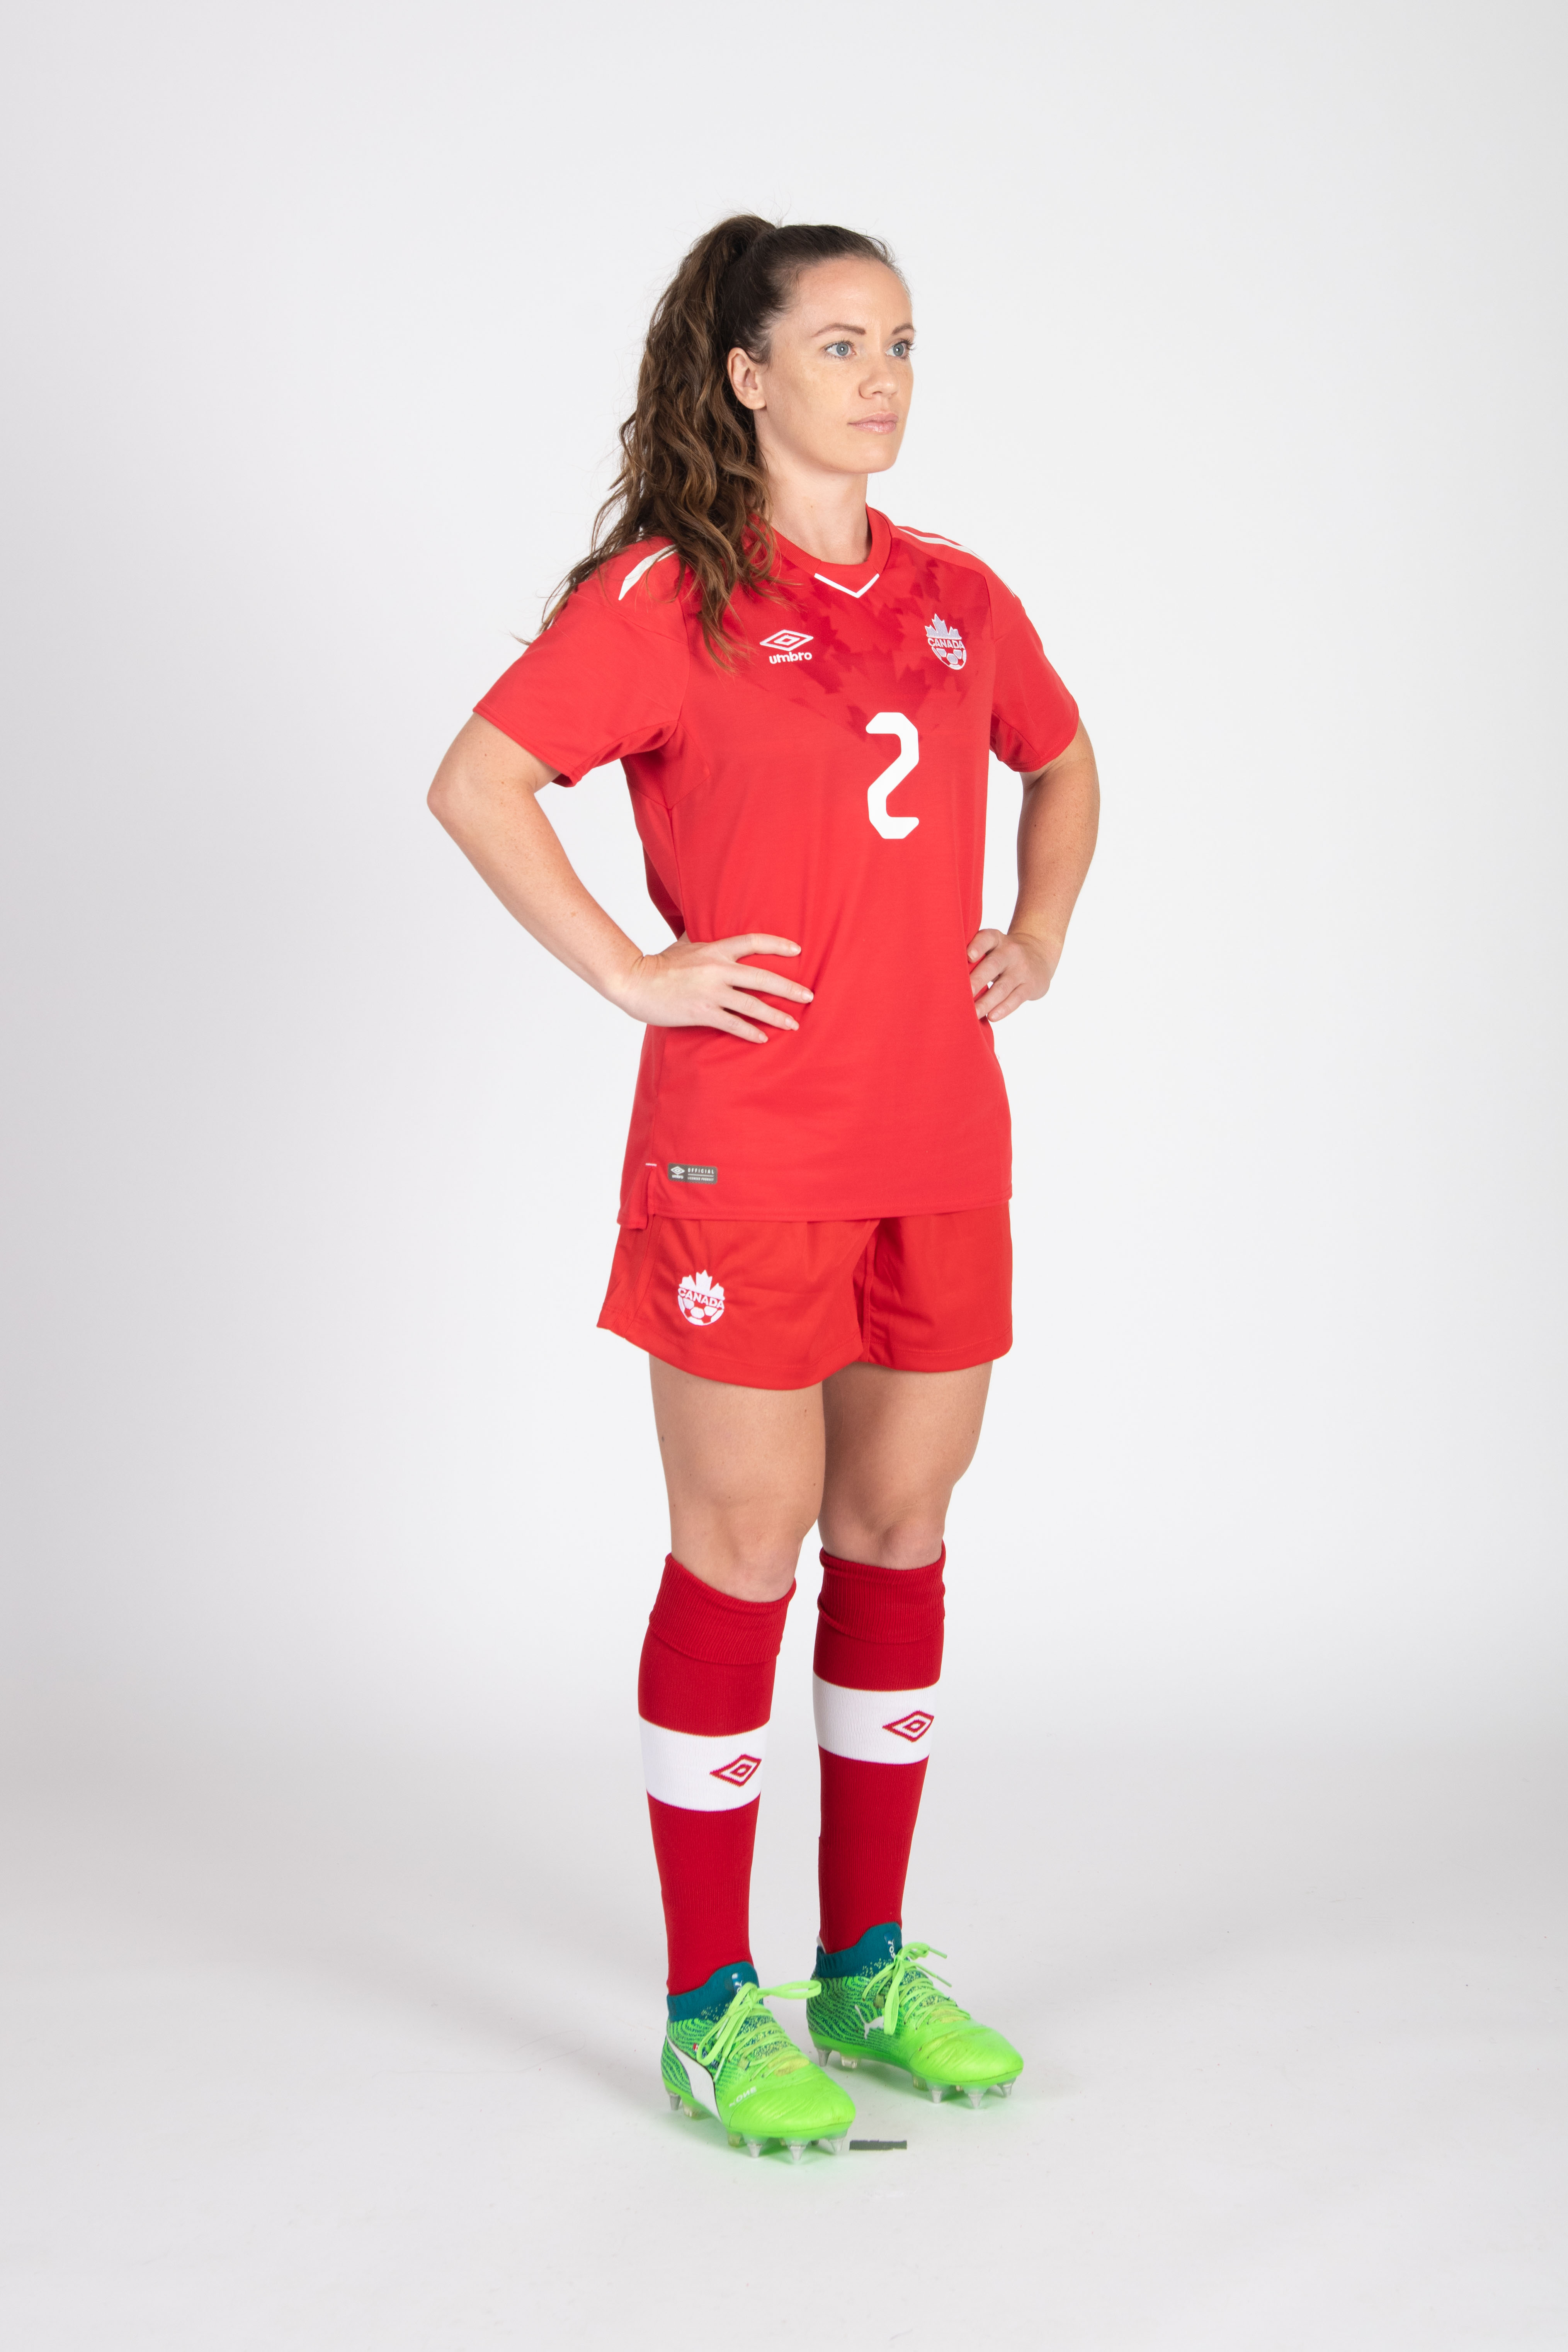 20180604_CANWNT_Chapman_byBazyl11